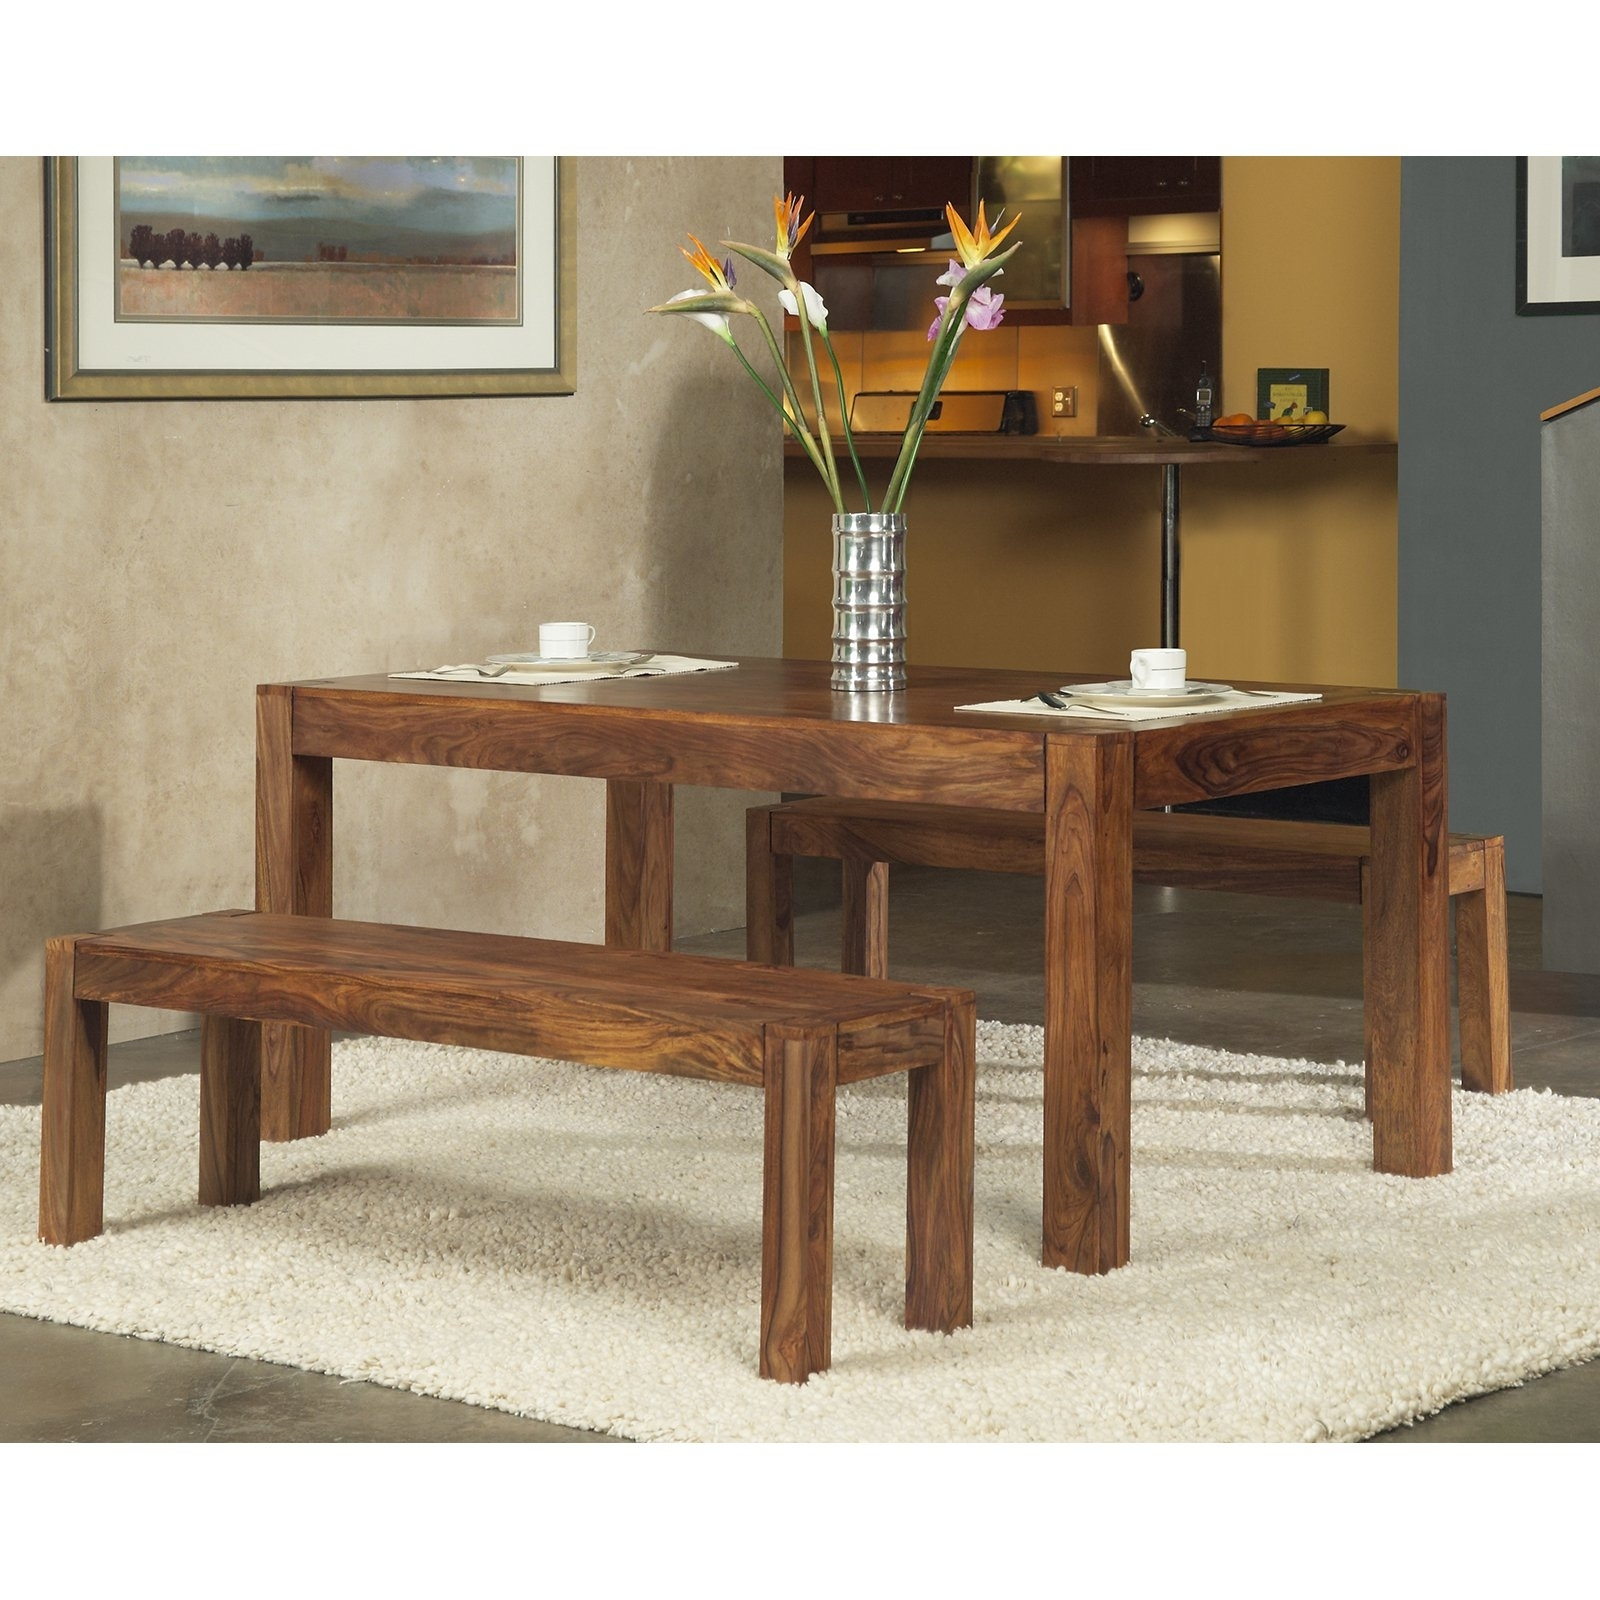 Modus Genus 3 Piece Dining Table Set With 2 Benches – Walmart In Well Known Dining Tables And 2 Benches (View 10 of 25)